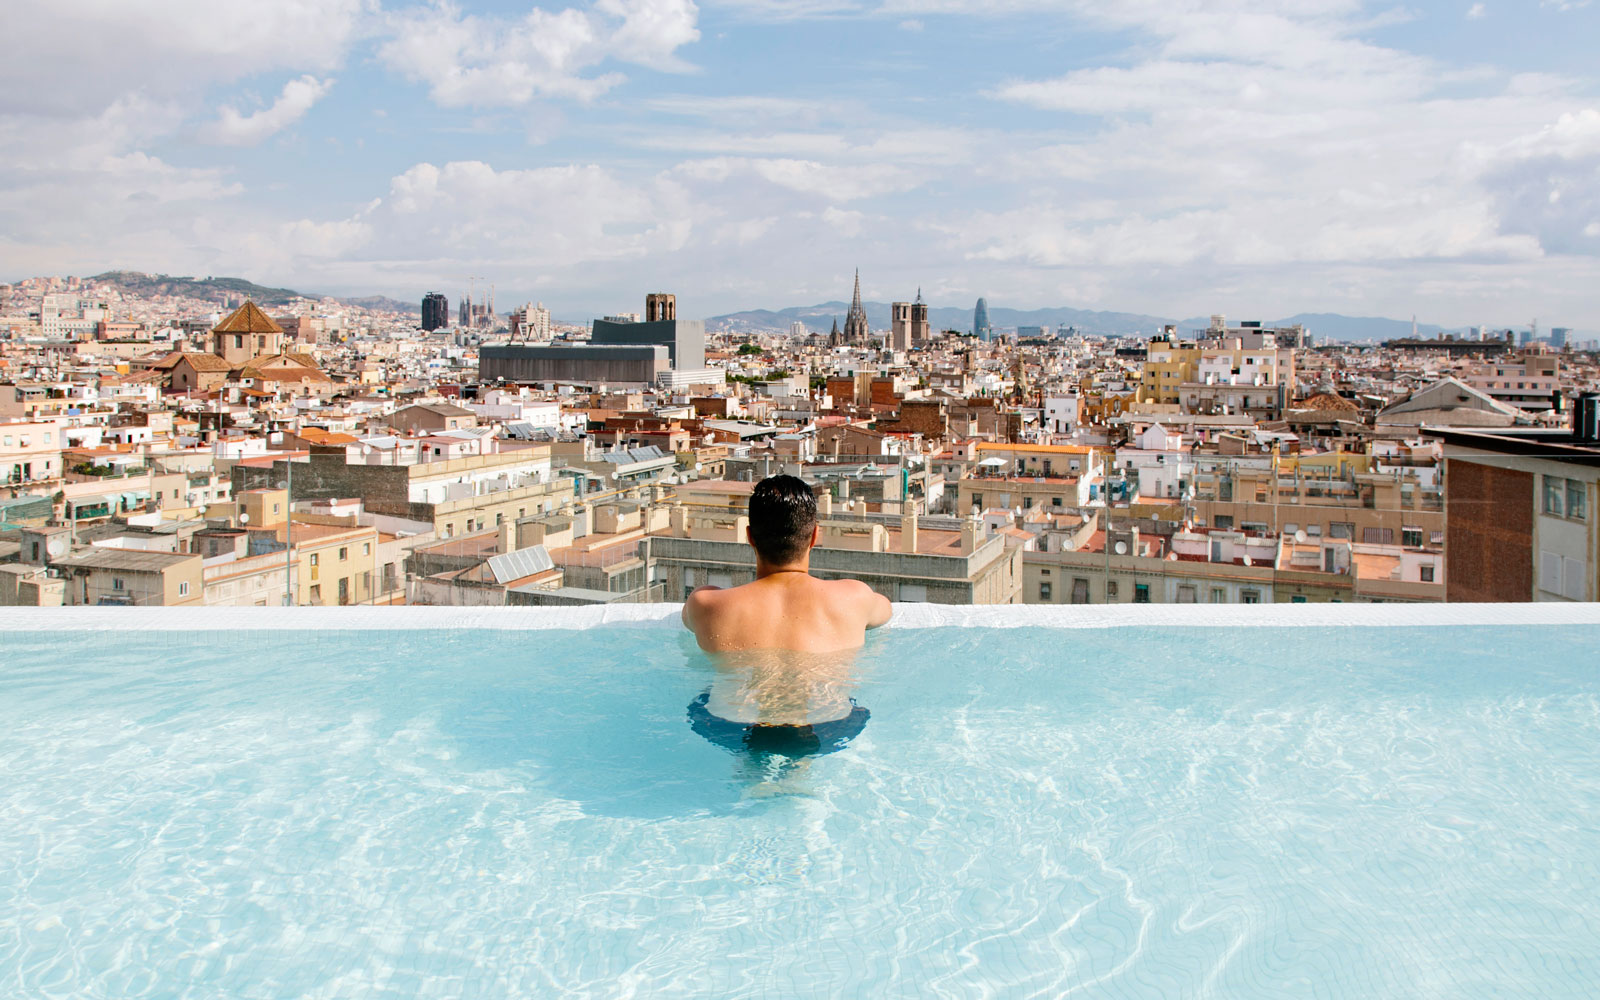 Expedia Is Offering Up to 90% Off Hotels This Weekend | Travel + Leisure